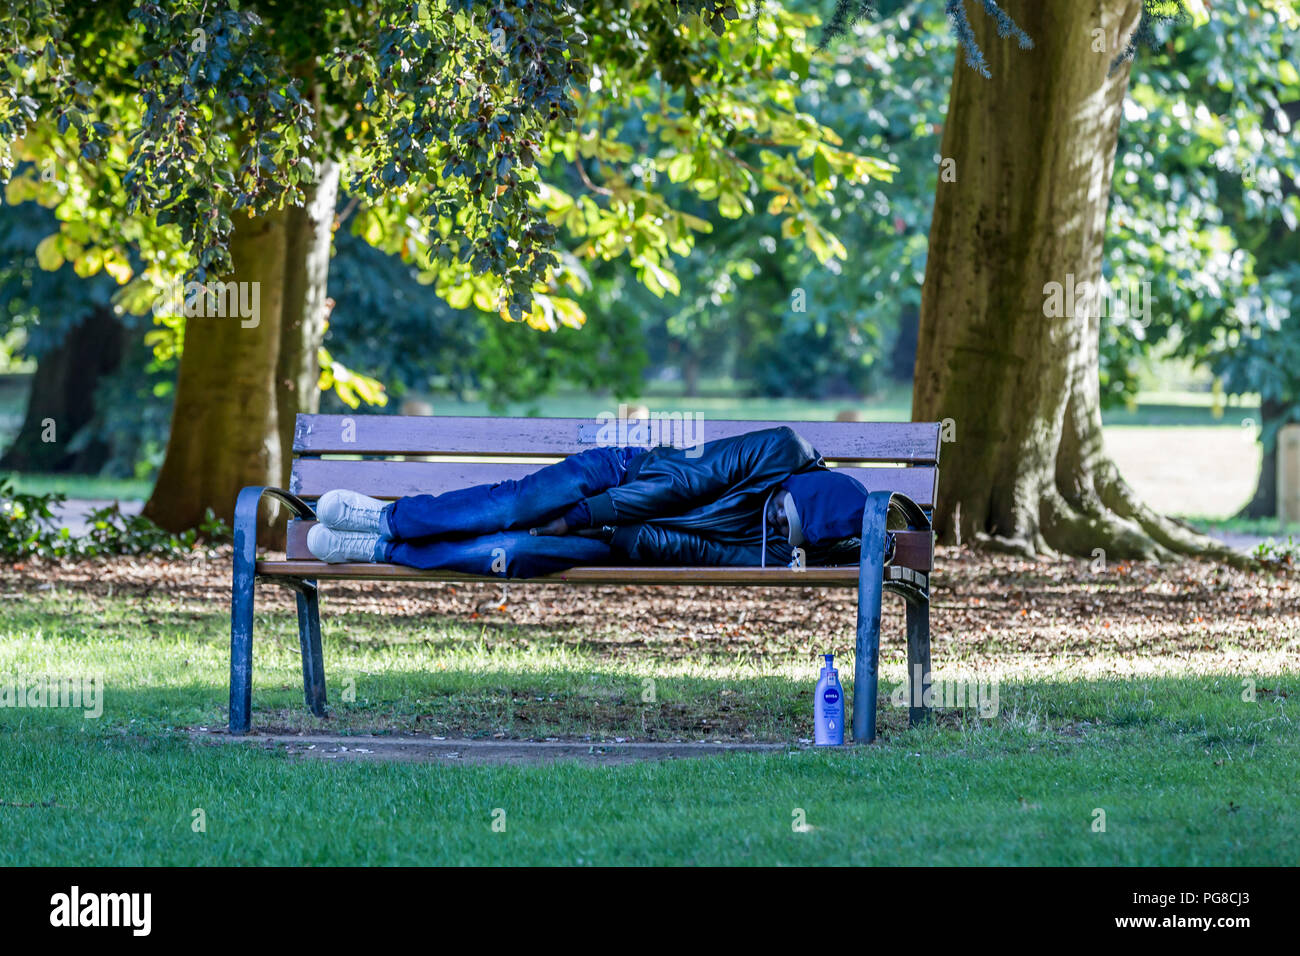 Northampton. U.K. 24th August 2018.  A man sleeping it off or sleeping rough on a park bench in Abington Park this morning, homeless people use the benches and bus shelters around the town park, temperatures were in single figures last night making it feel much colder than of late. Credit: Keith J Smith./Alamy Live News - Stock Image